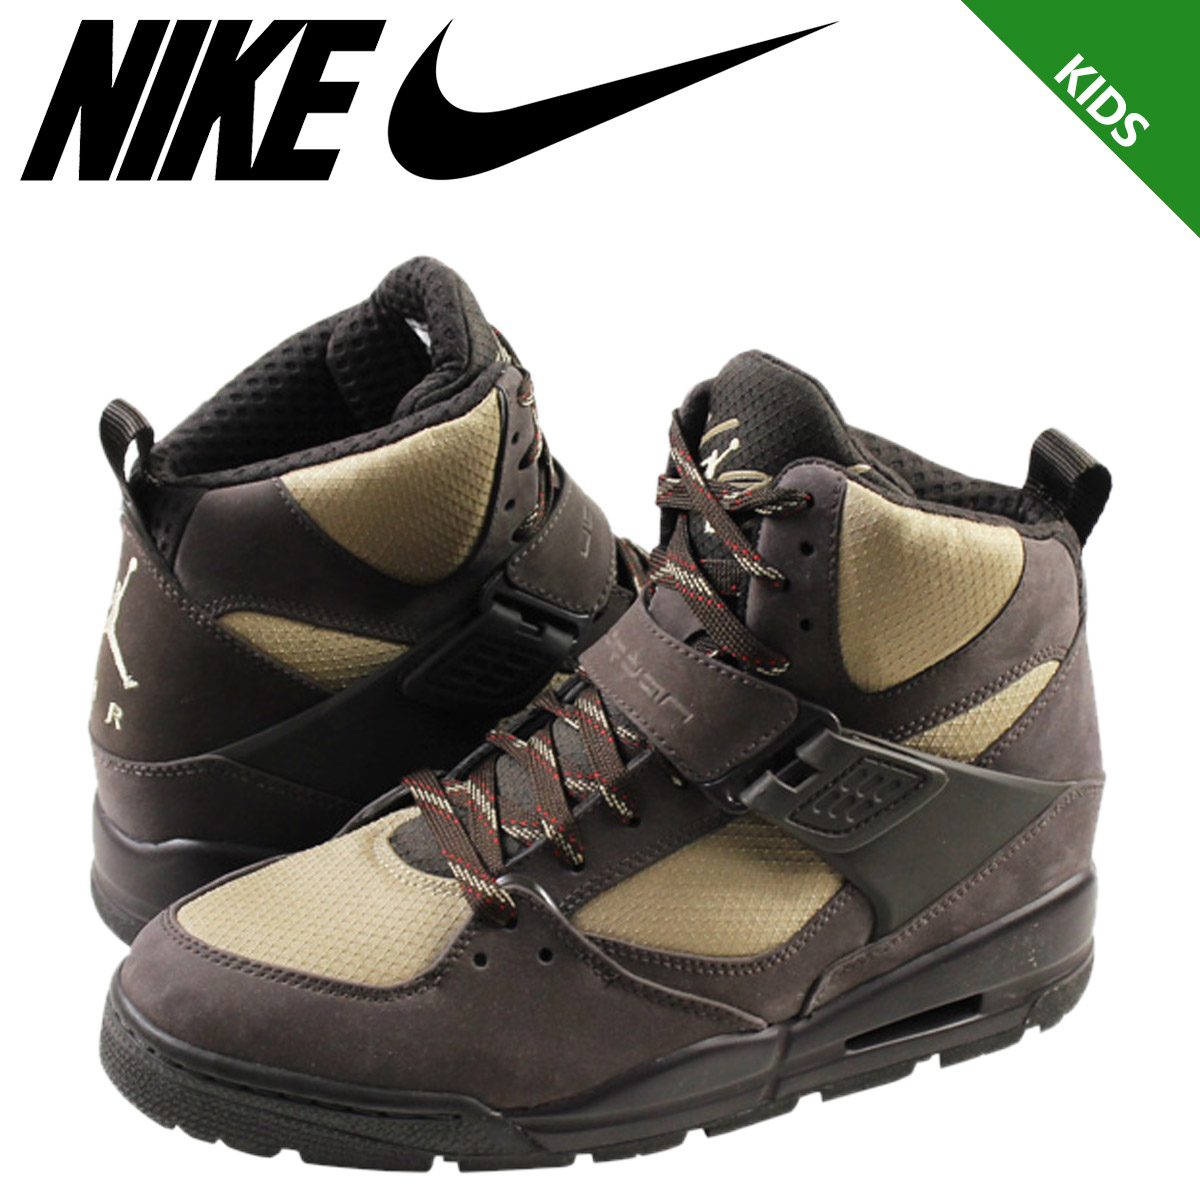 62cb671bd2c Nike NIKE JORDAN FLIGHT 45 TRK sneaker boots Jordan flight 45 Trek leather  mens 467927-204 Brown  6   19 new in stock